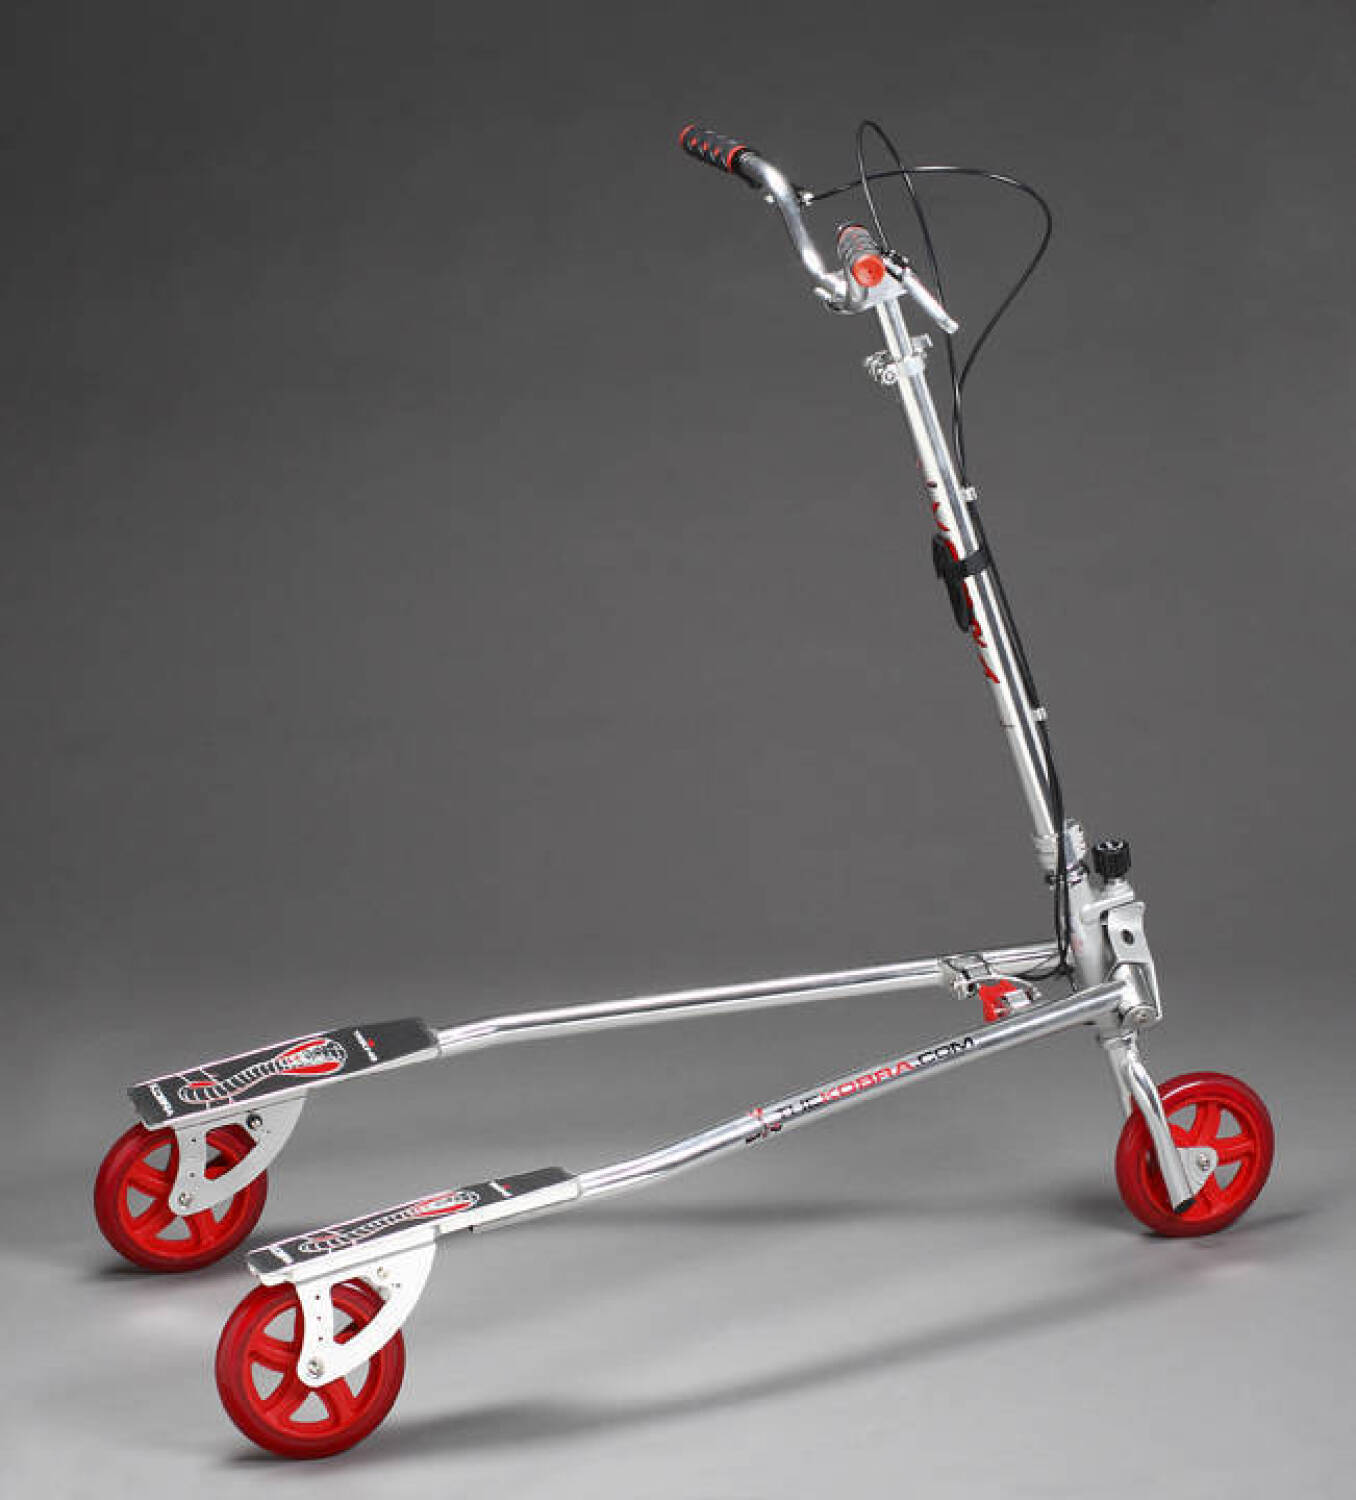 A TRI-KING COBRA SCOOTER - Current price: $25